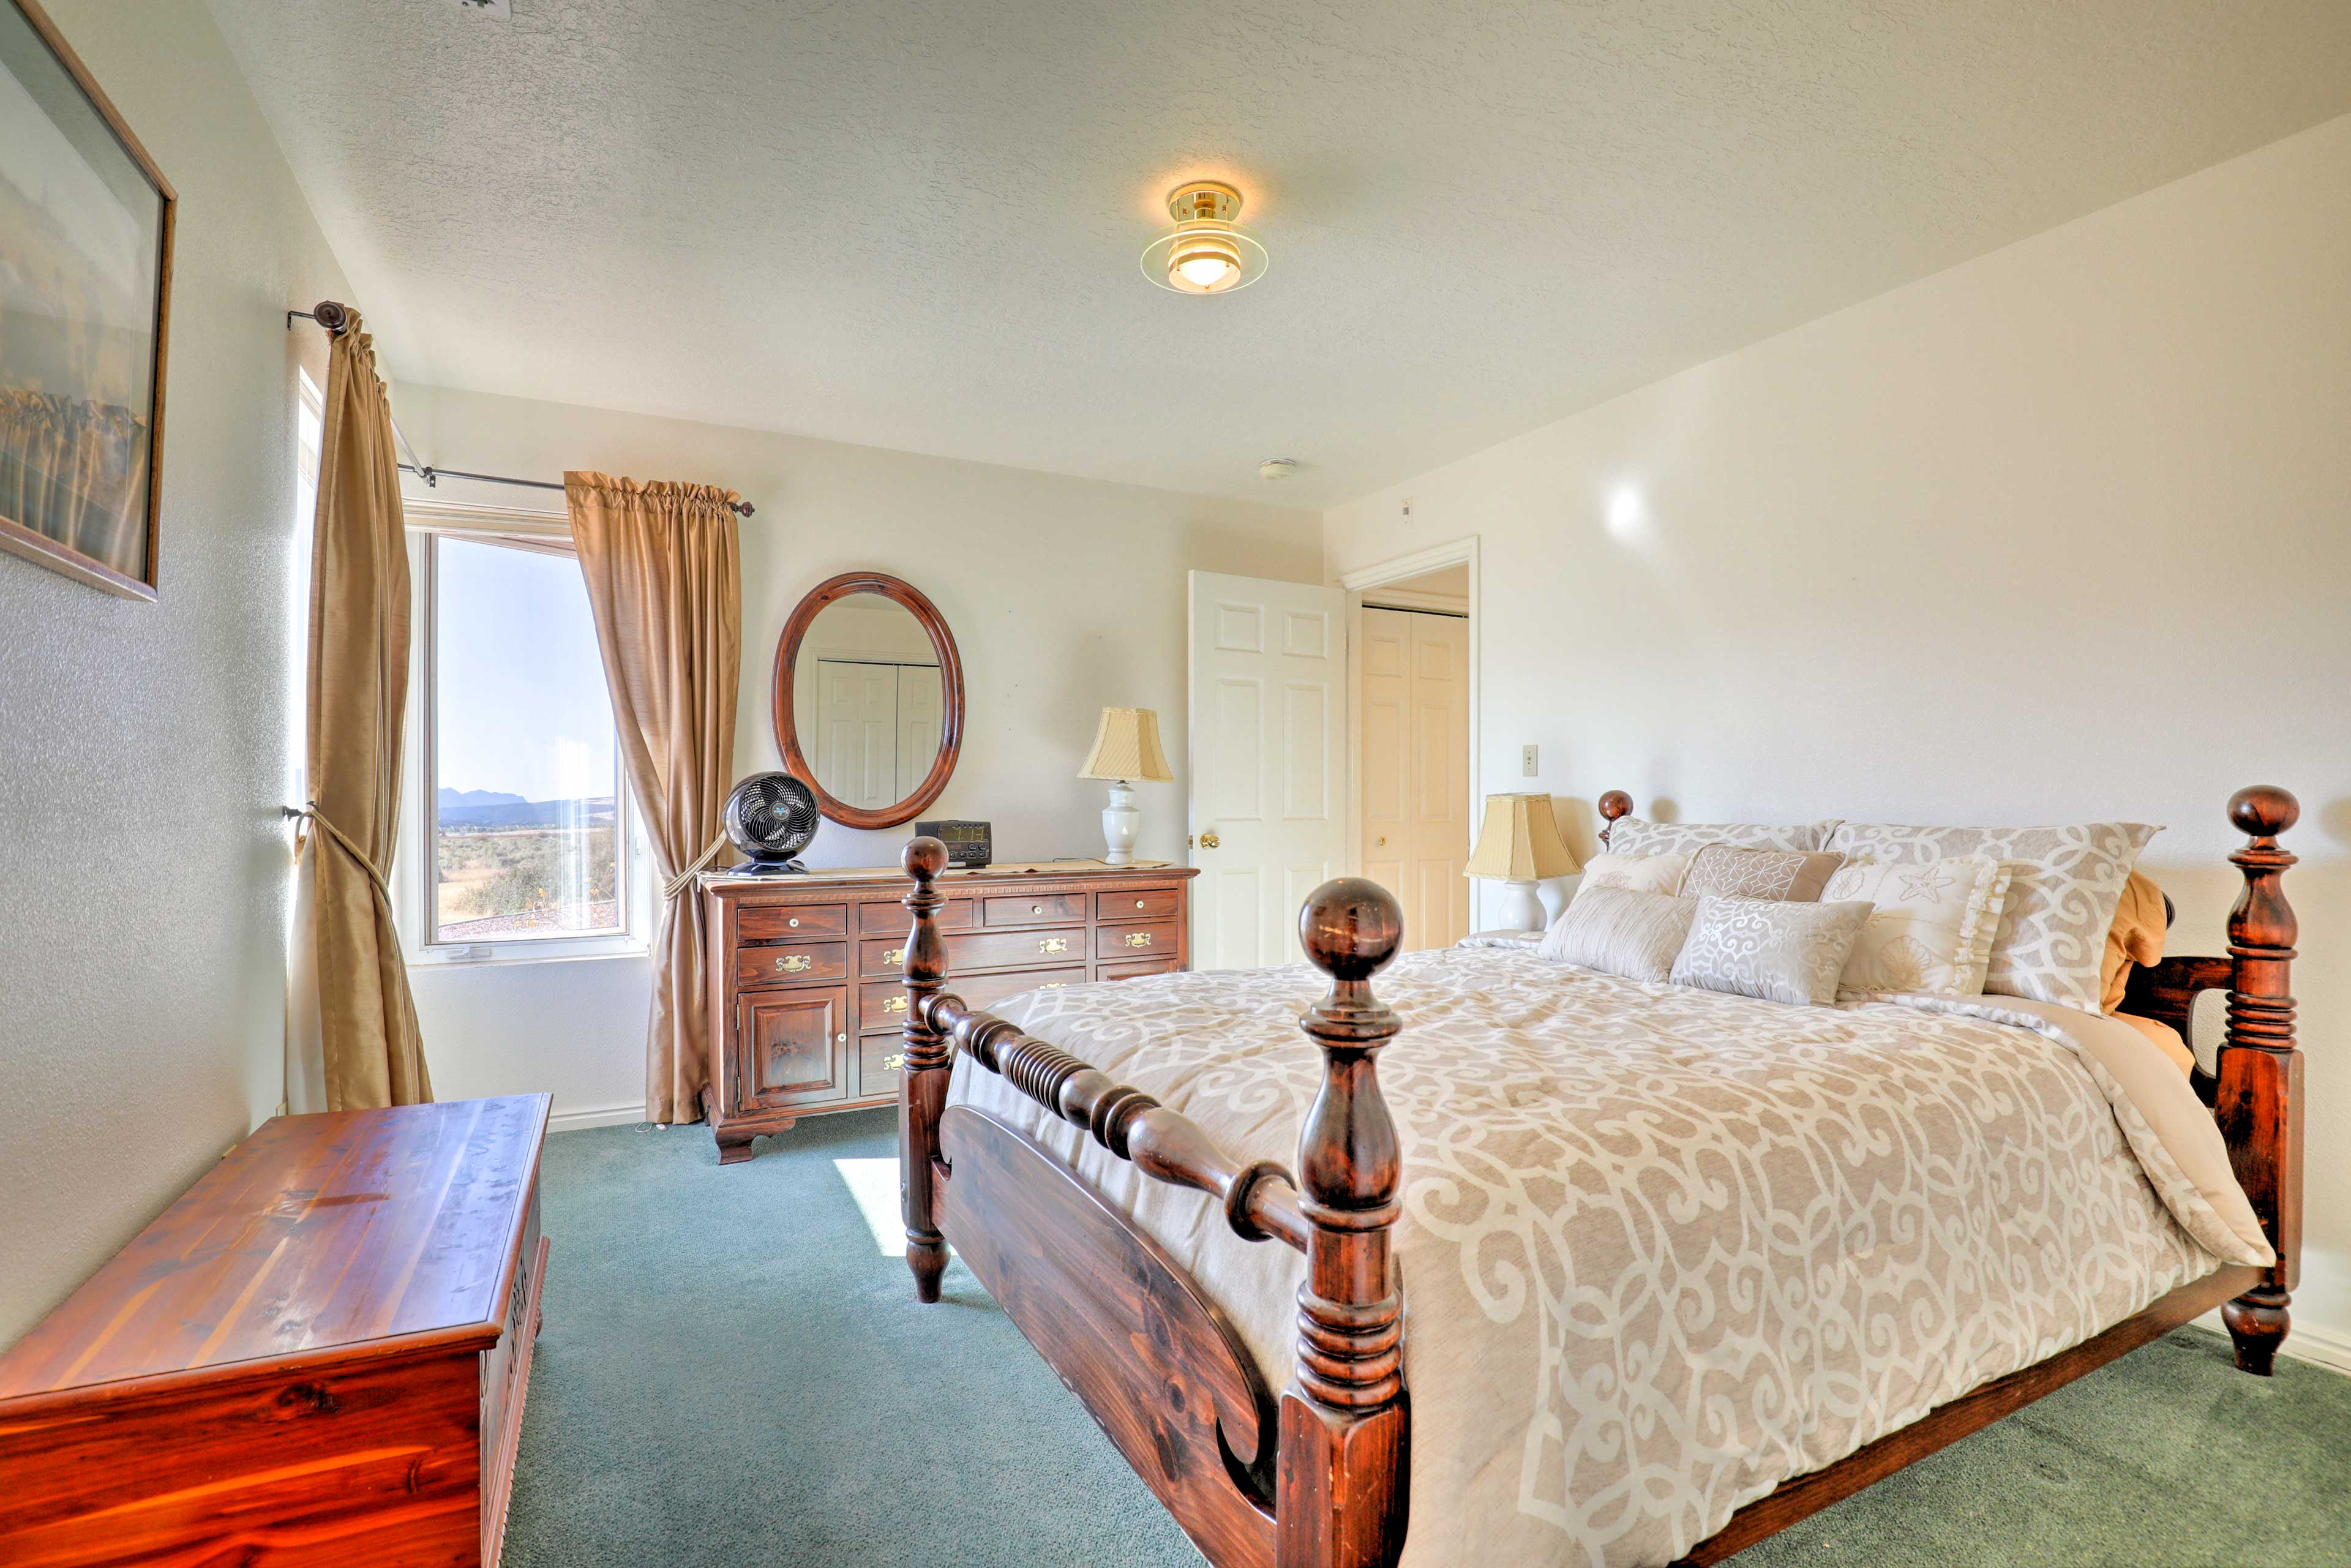 Both bedrooms provide queen-sized beds.